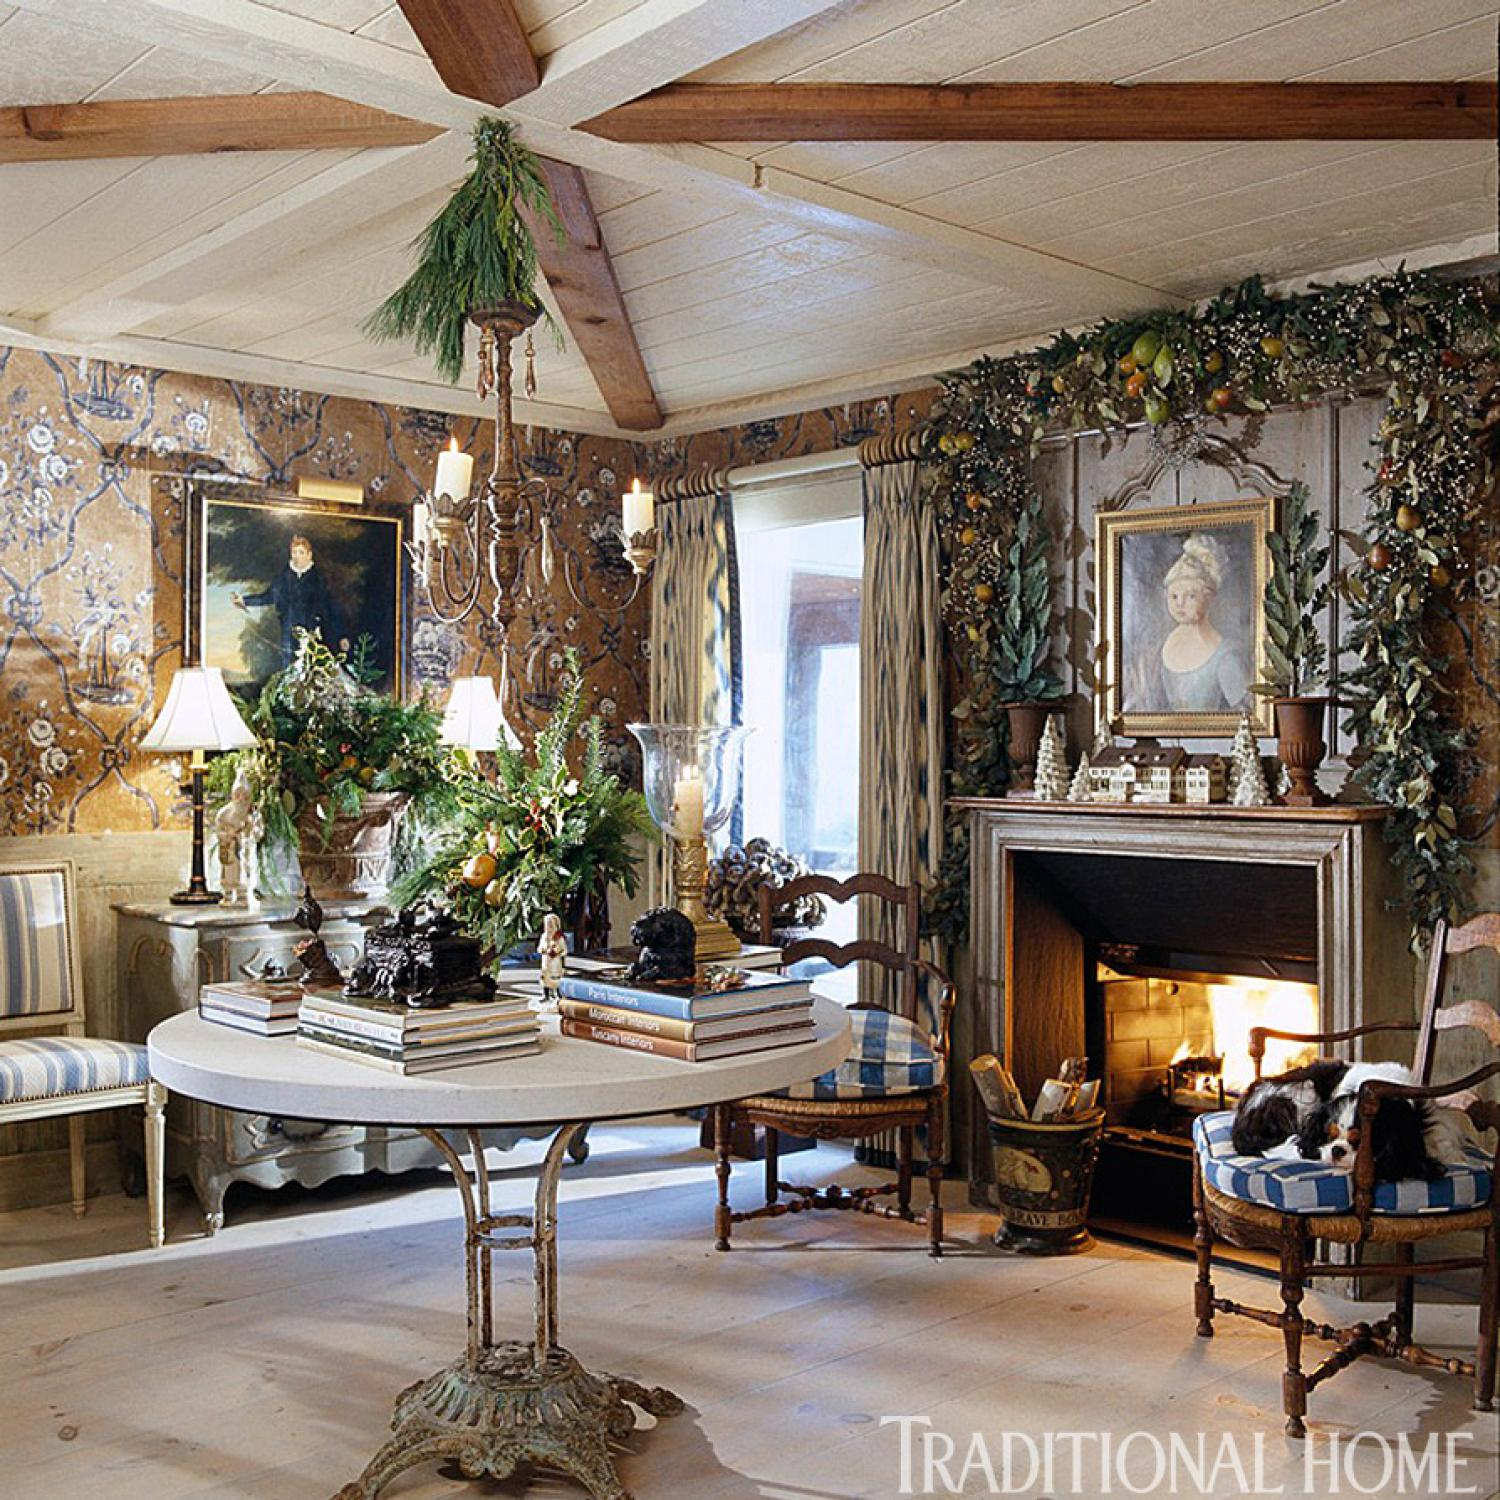 Decorated Homes: Charles Faudree's Country Cabin